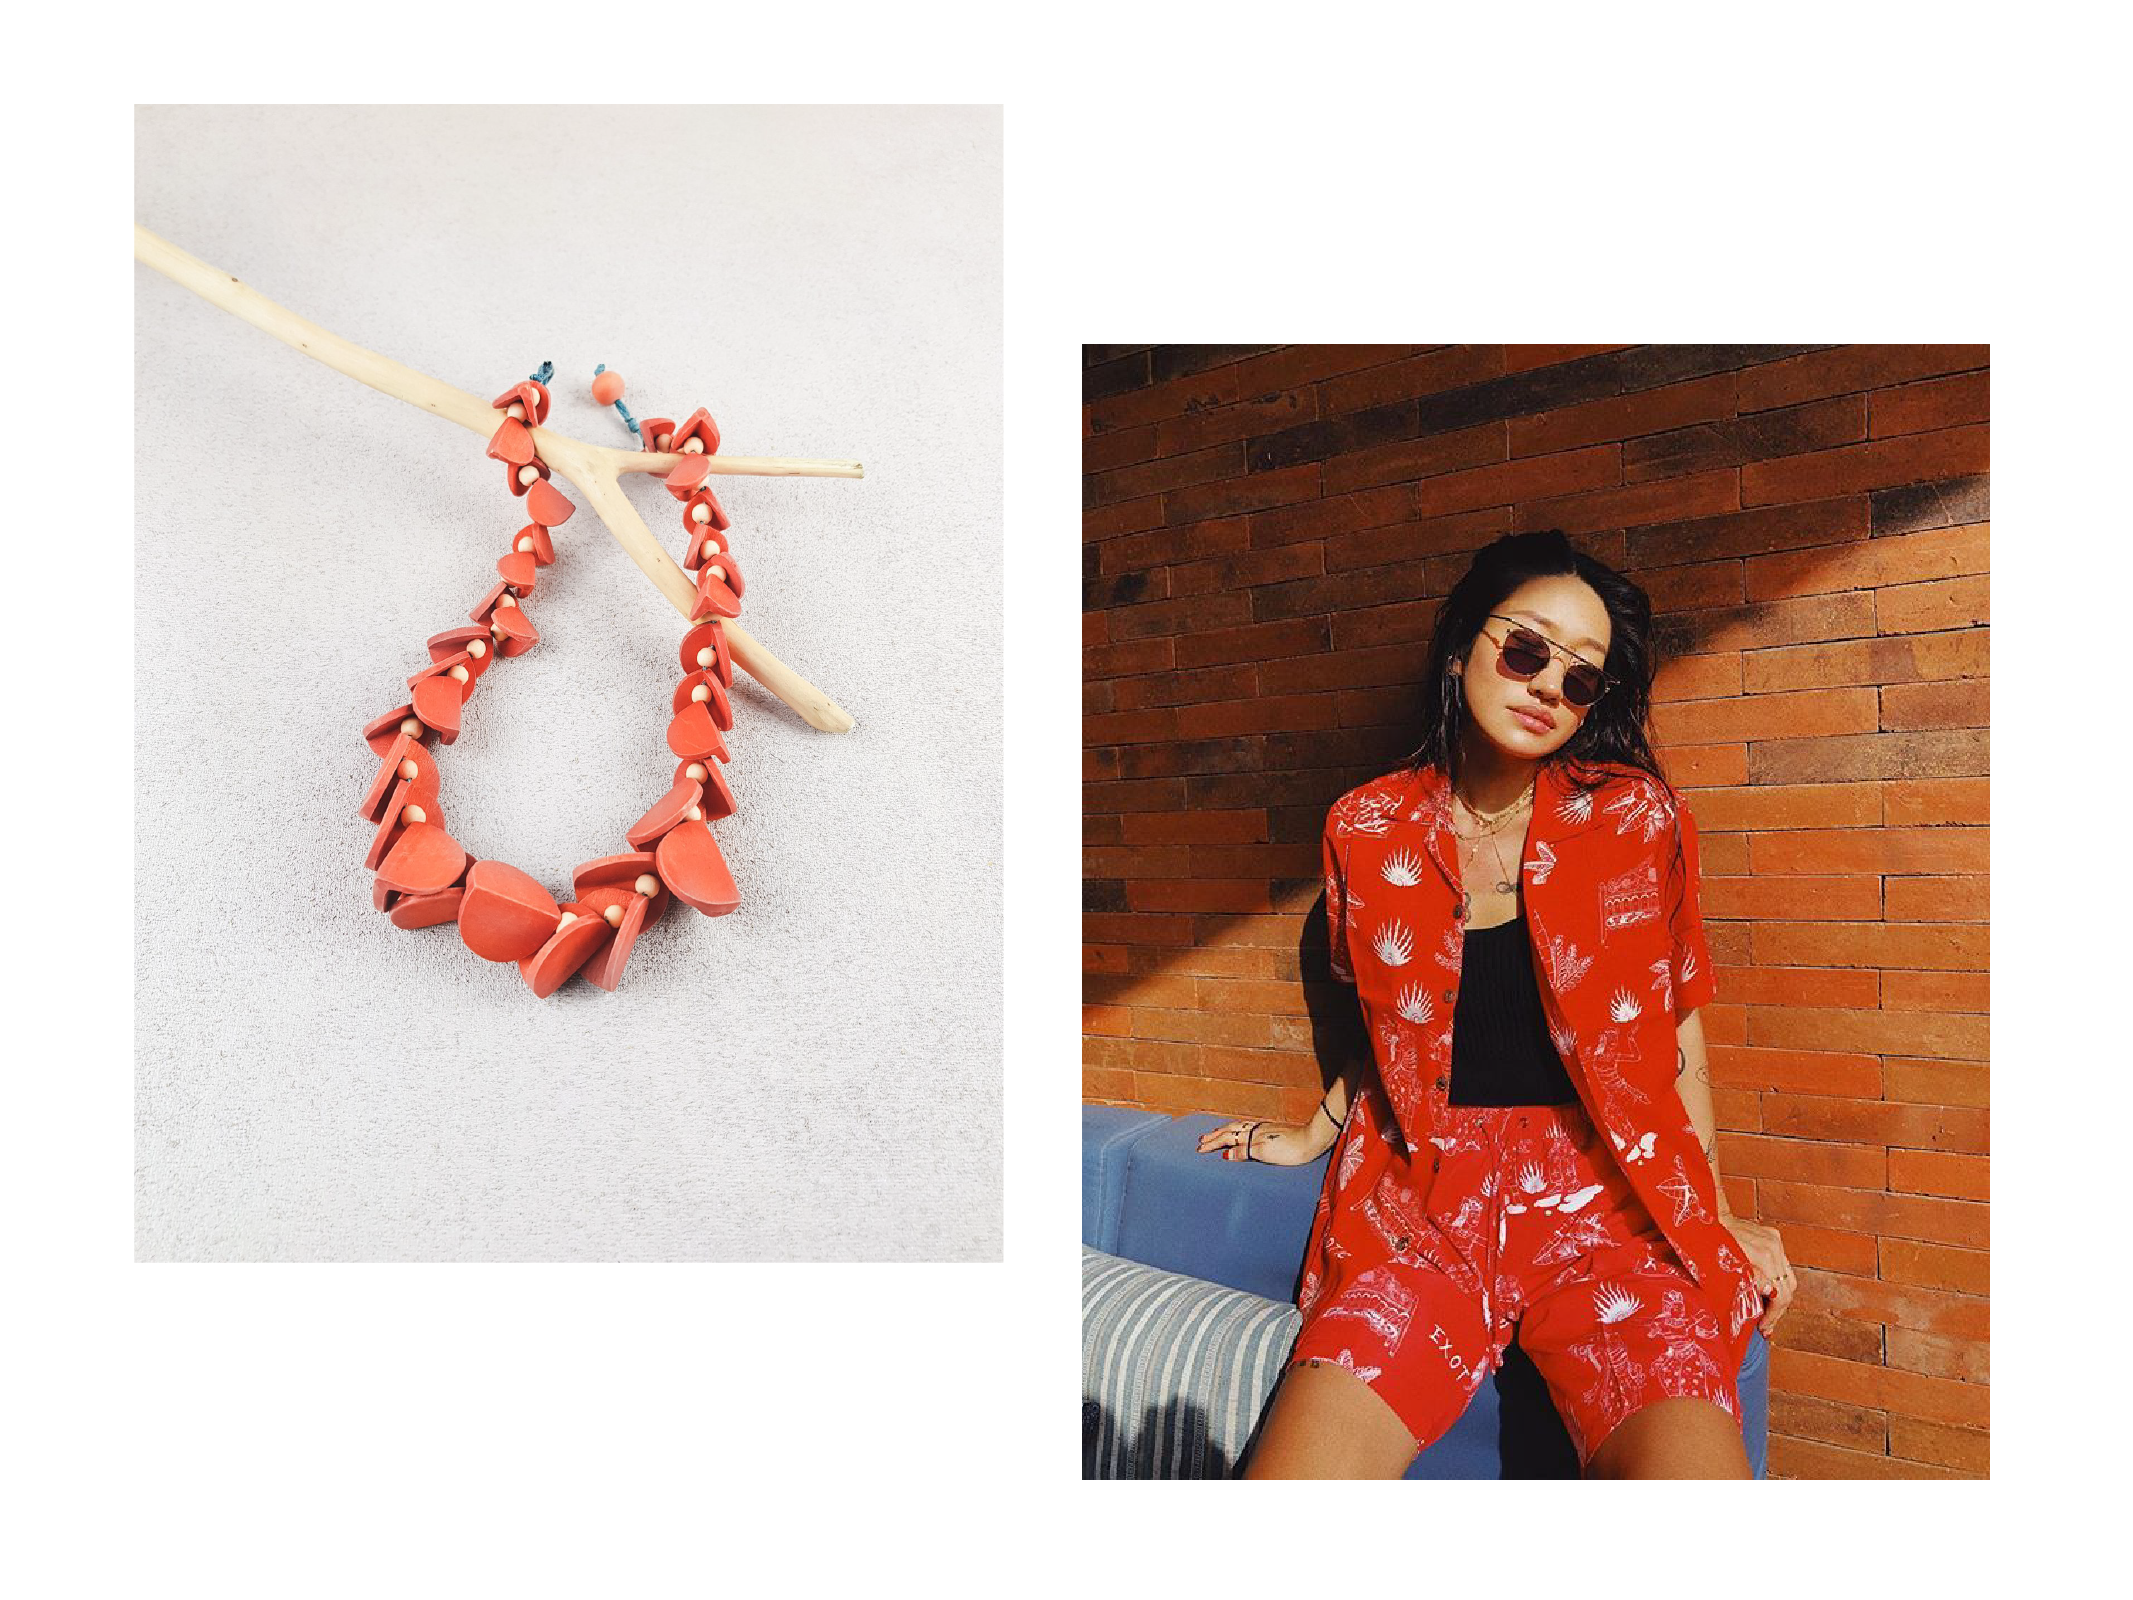 Peggy gou wearing red terno set with moy wooden necklace